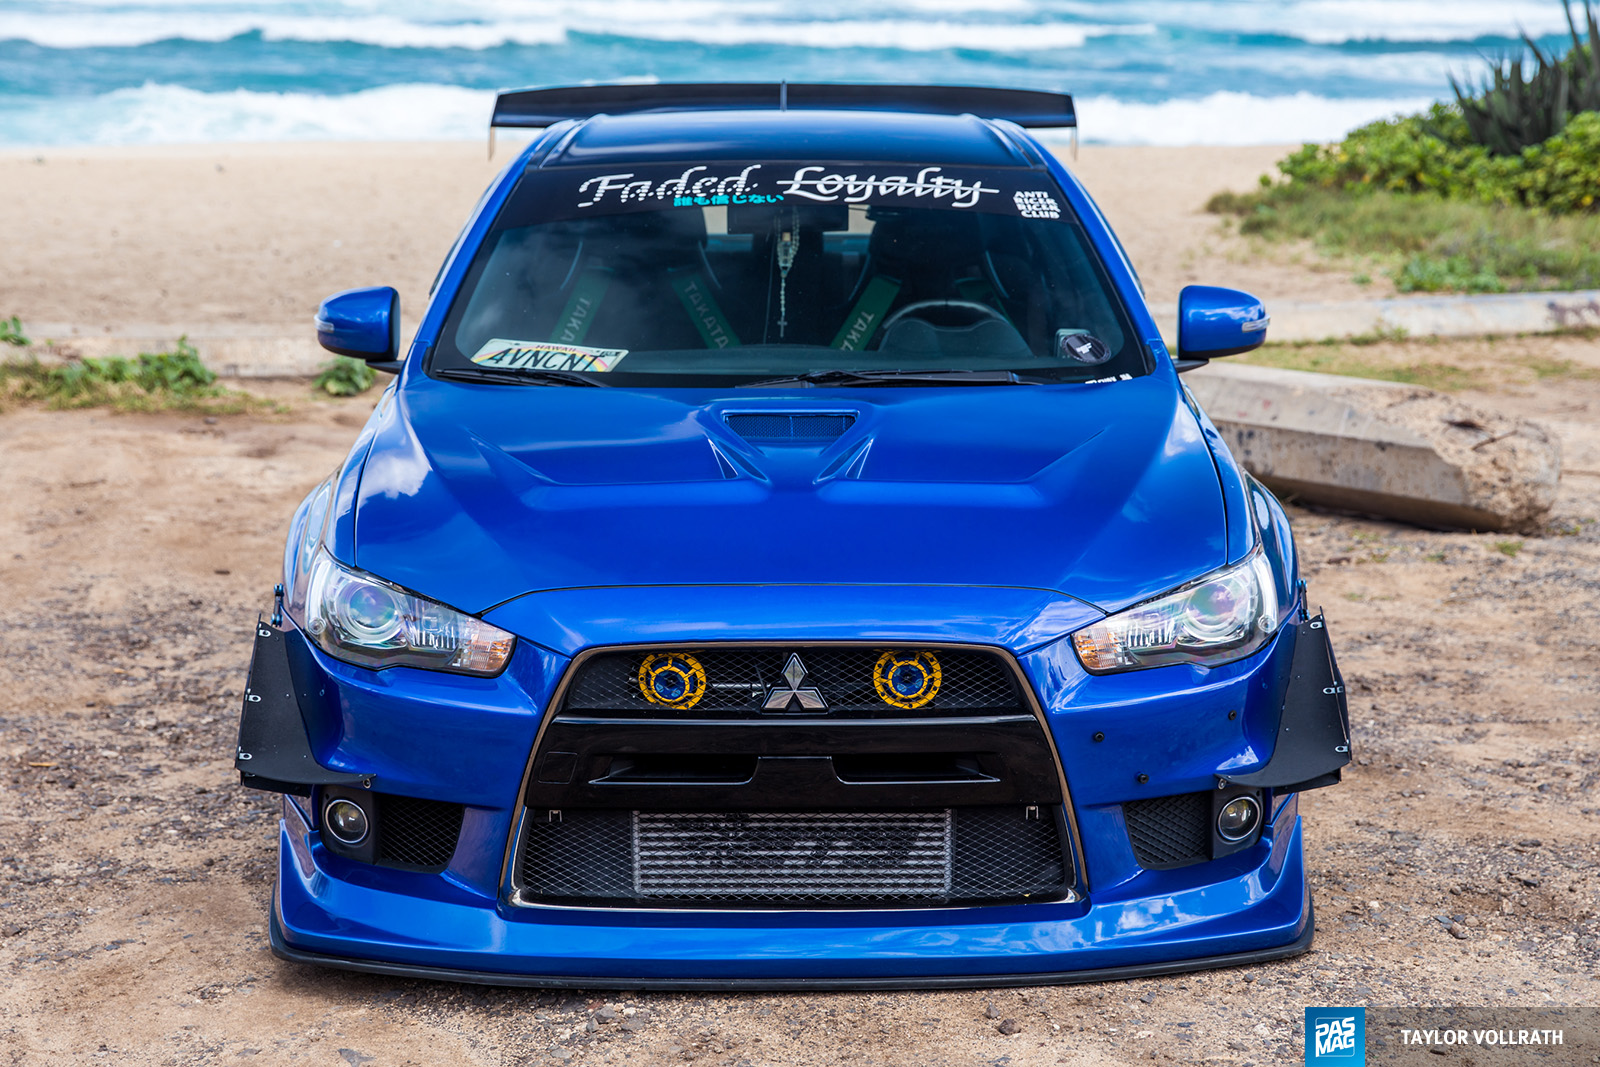 07 JM Andrada 2015 Mitsubishi Evolution X PASMAG Tuner Battlegrounds